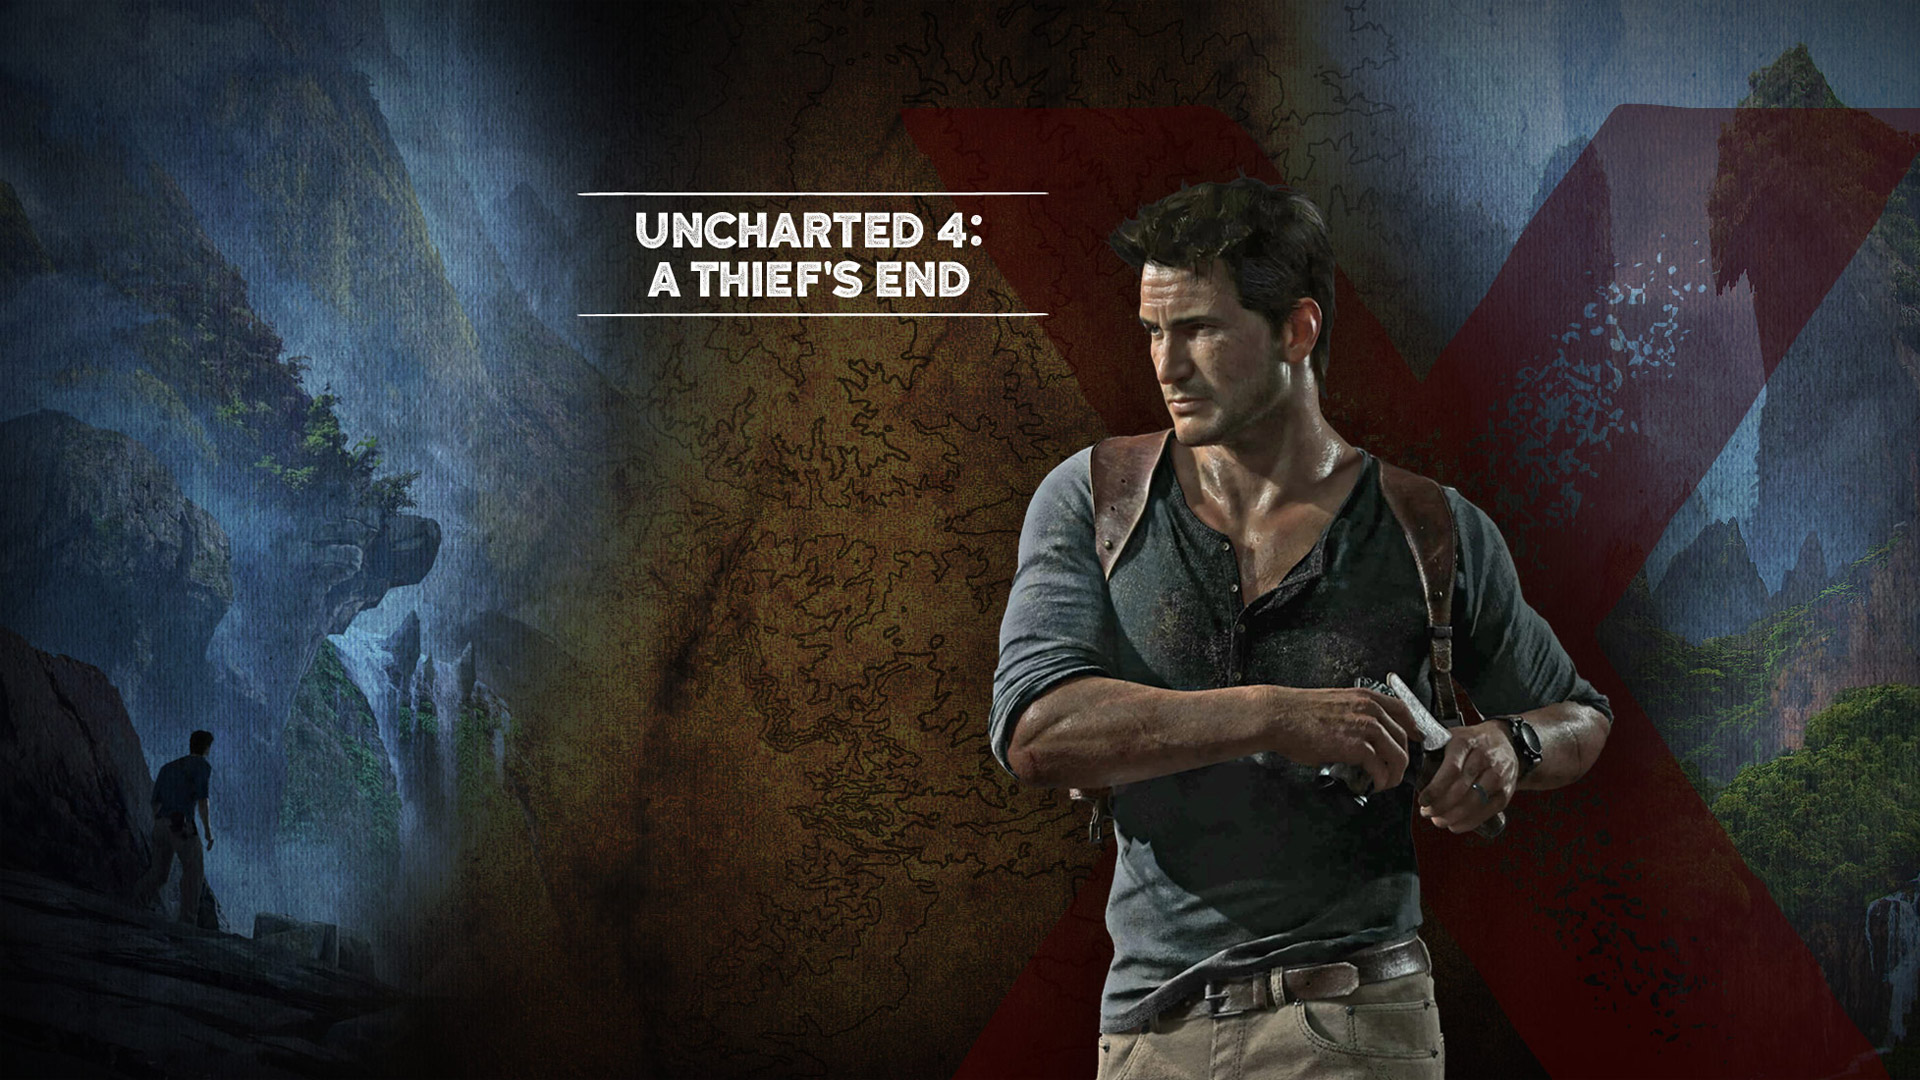 Uncharted 4 A Thief End HD Wallpapers   All HD Wallpapers 1920x1080